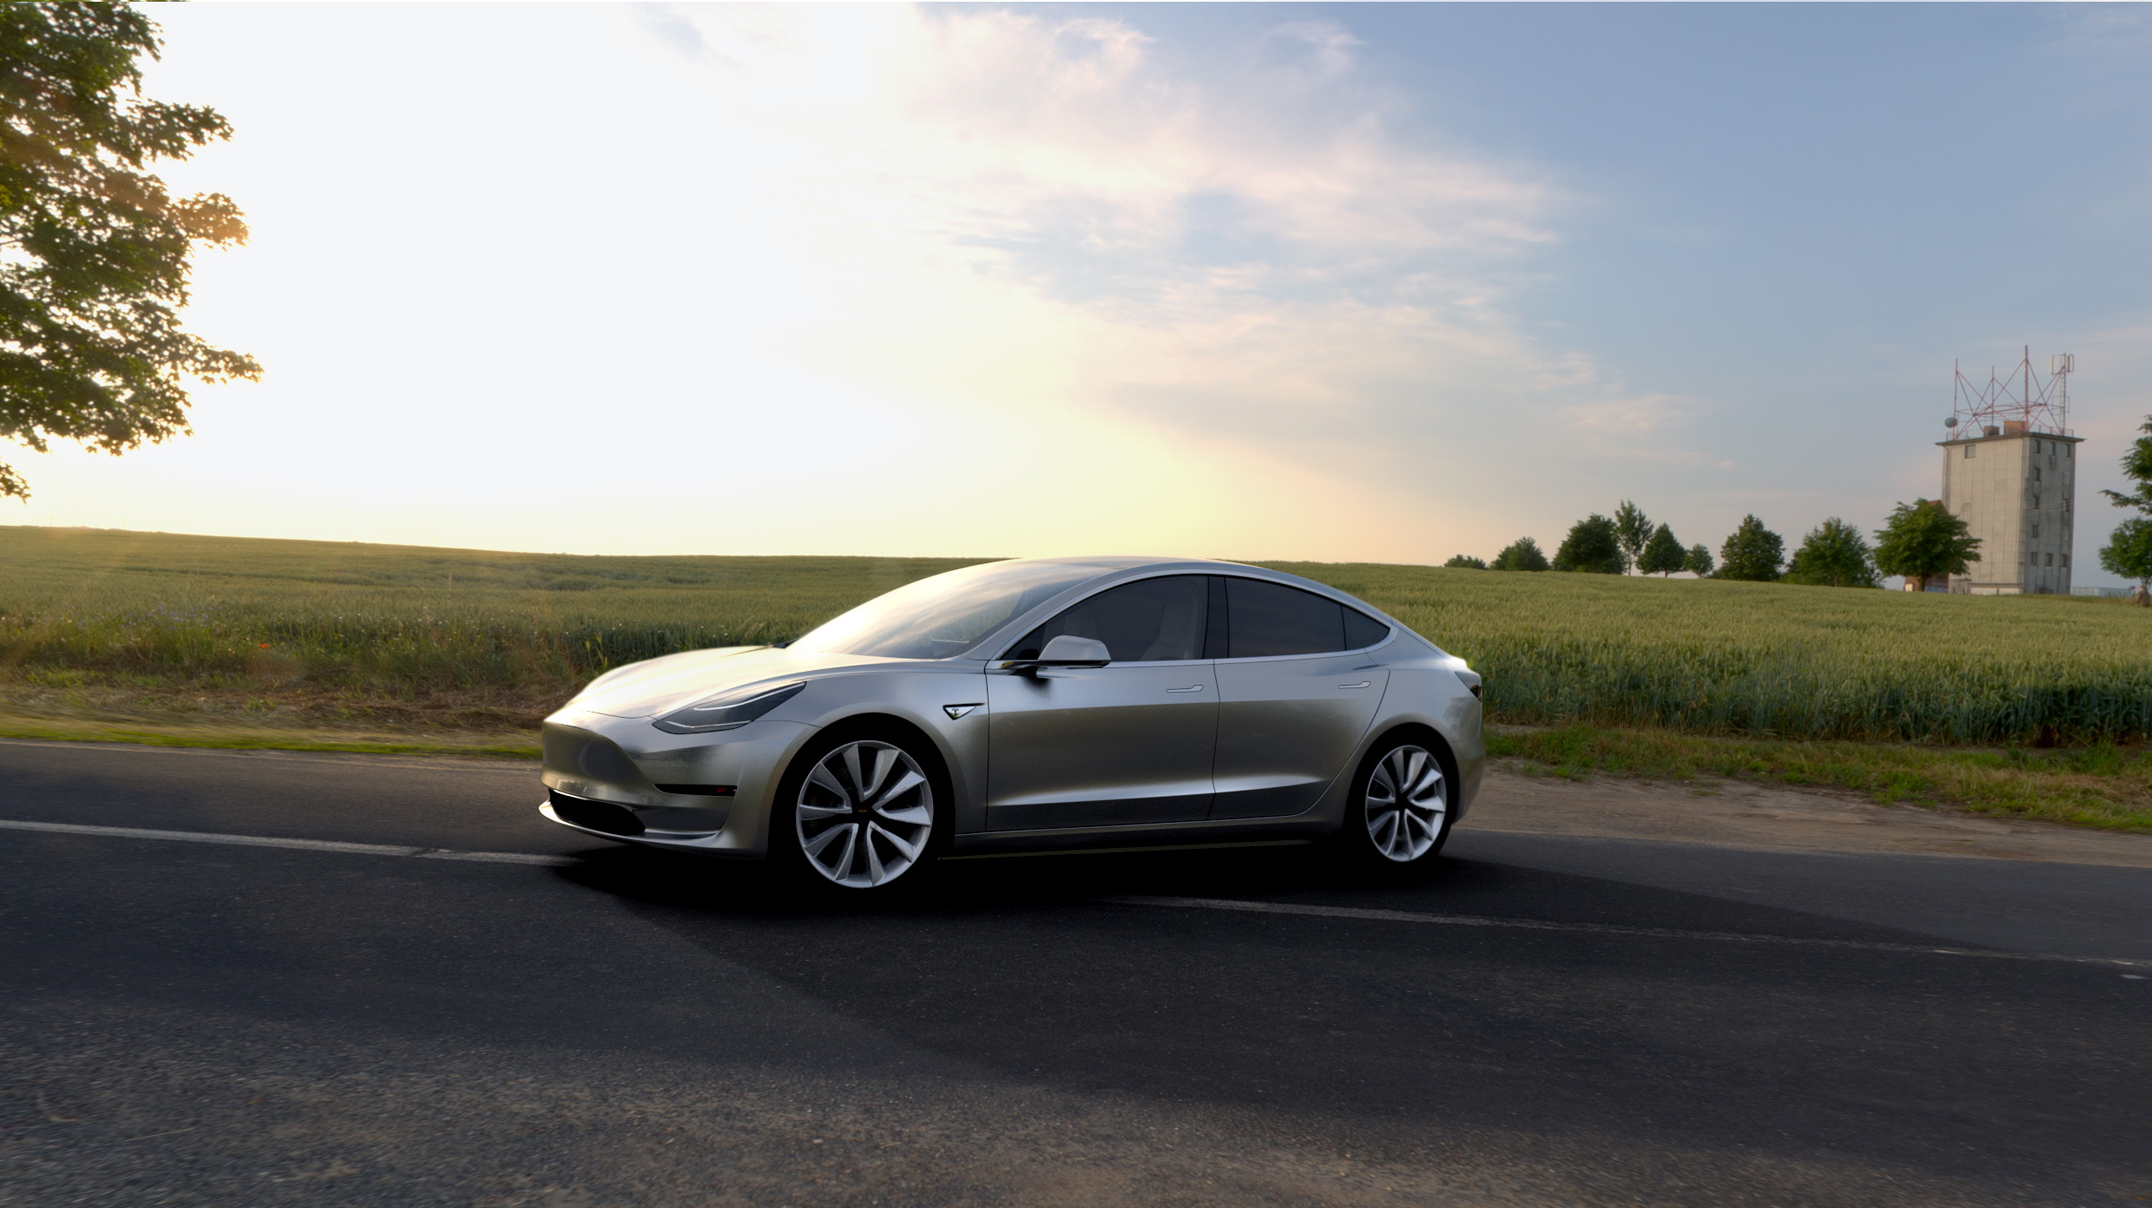 The Very First Tesla Model 3 Just Rolled Off the Line. So Who Gets It?